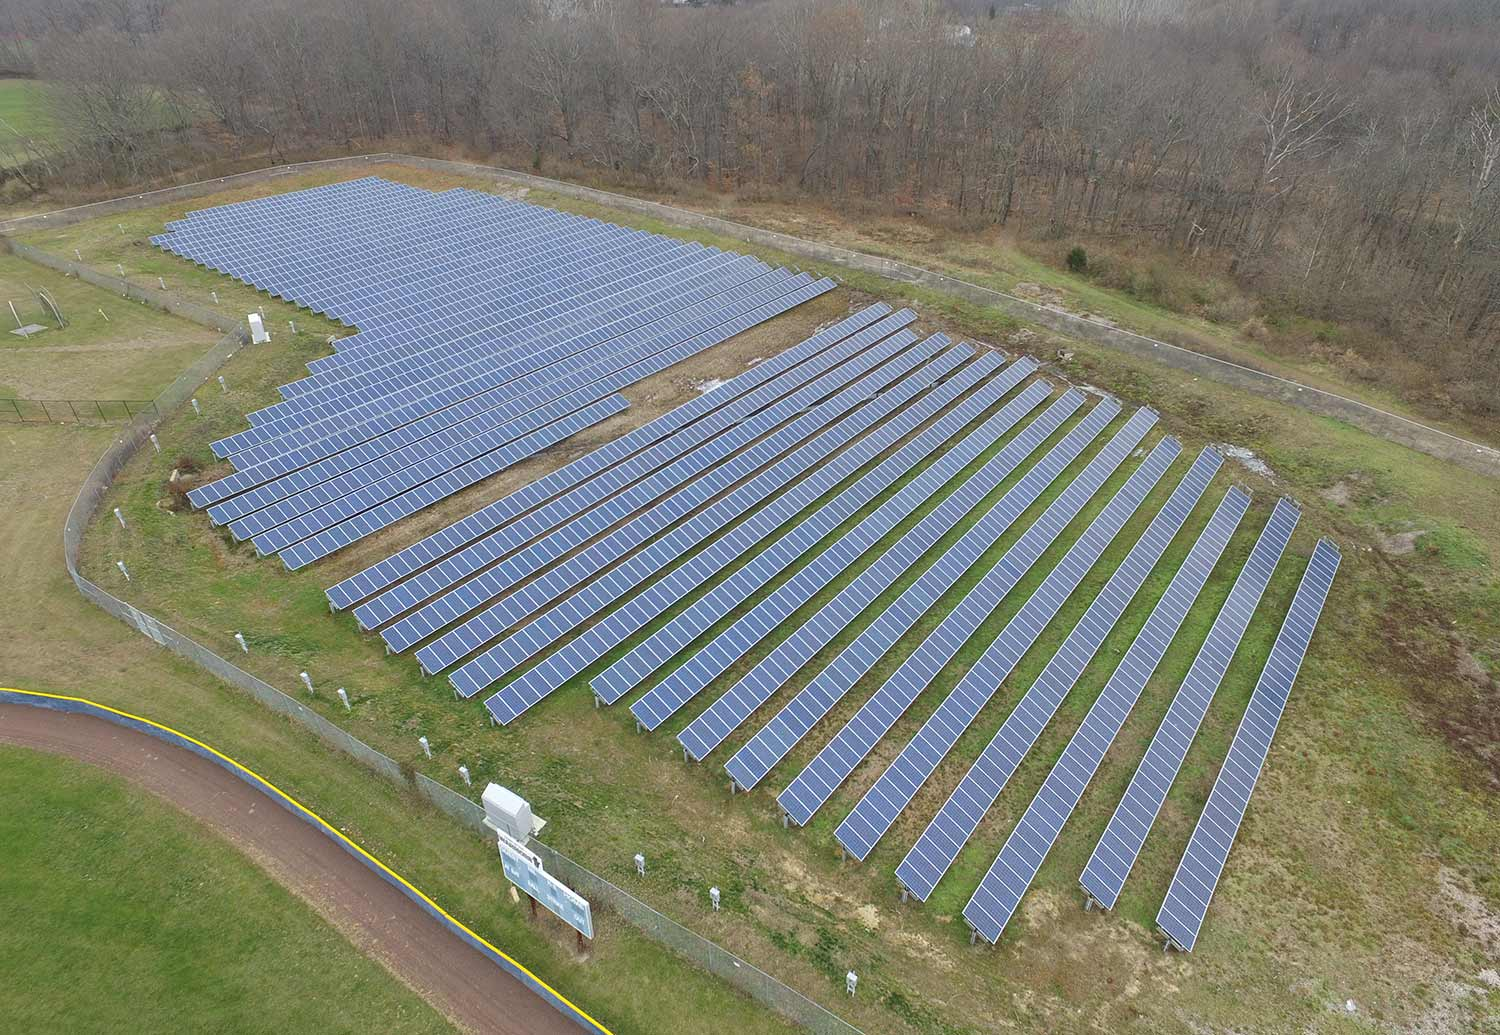 Plumsted township solar ground mount array photo.